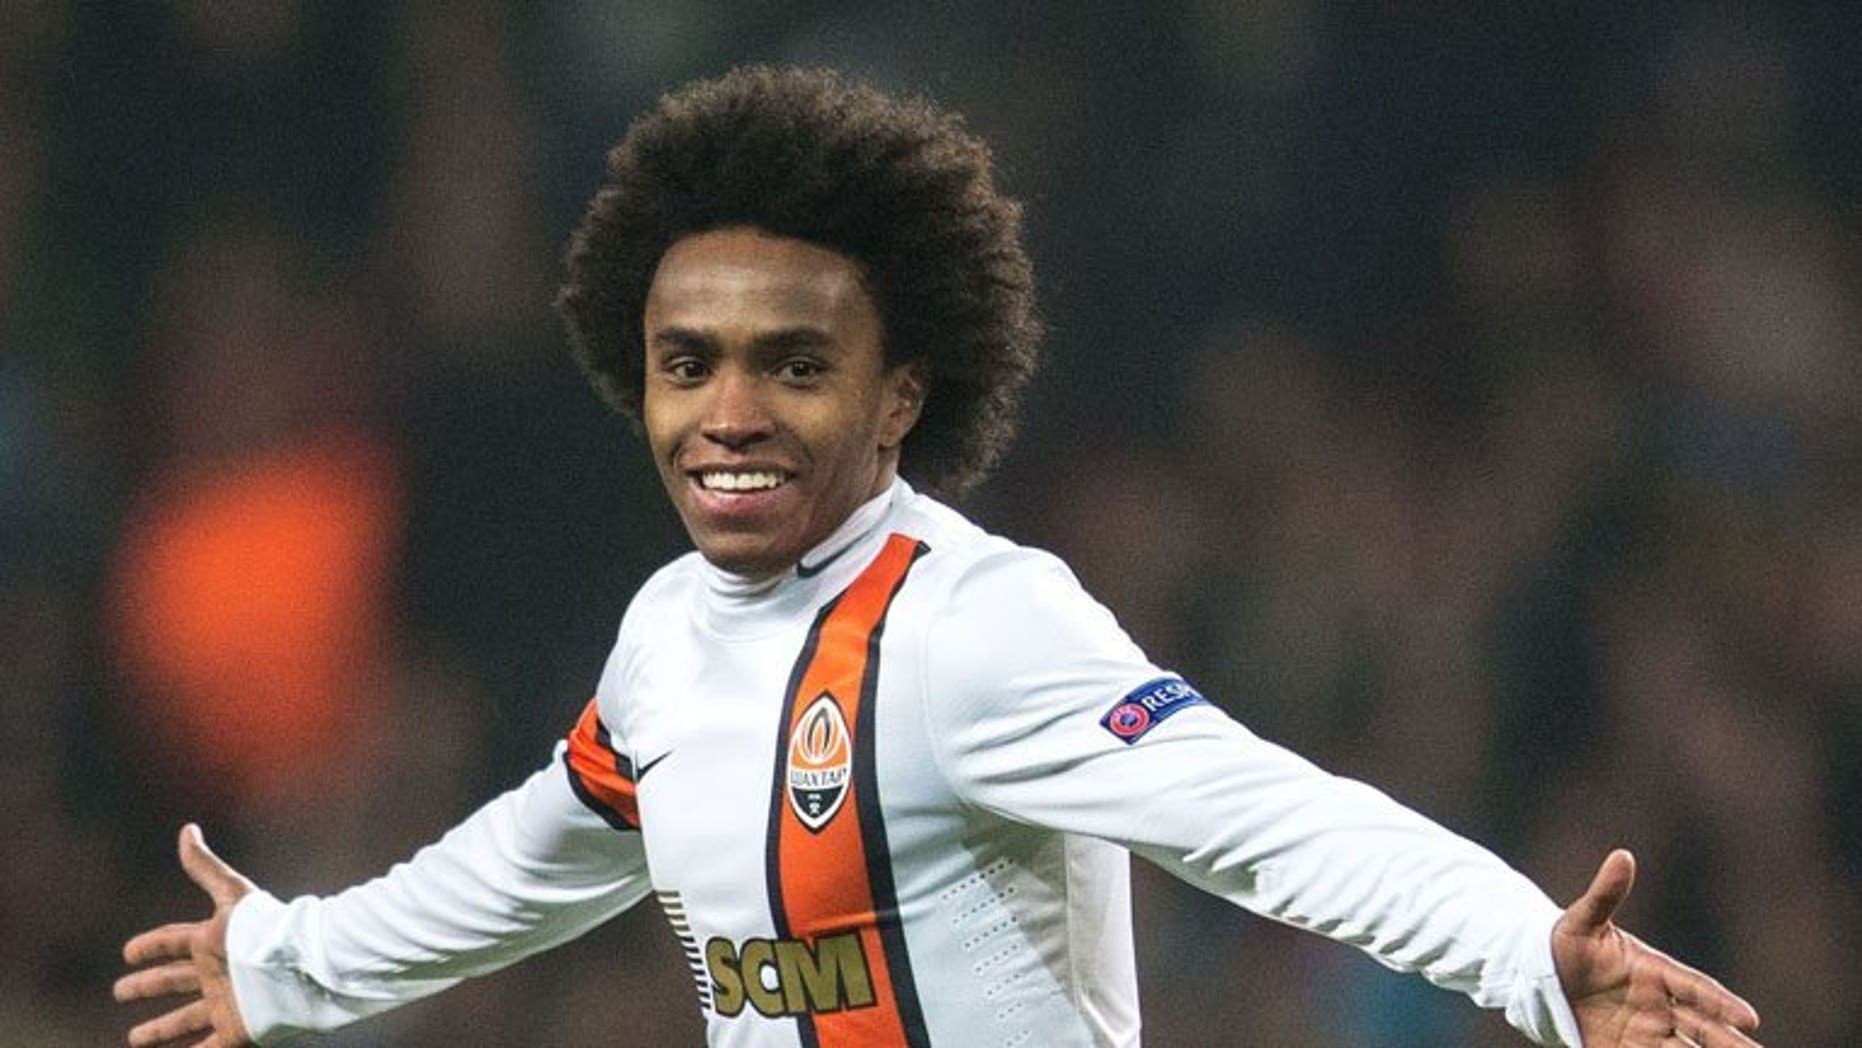 Brazilian midfielder Willian, then of Shakhtar Donetsk, pictured during a Champions League Group E clash against FC Nordsjaelland in Copenhagen, Denmark, on November 20, 2012. Tottenham manager Andre Villas-Boas on Wednesday confirmed that the Premier League side were in talks with Russian club Anzhi Makhachkala over the signing of attacking midfielder Willian.